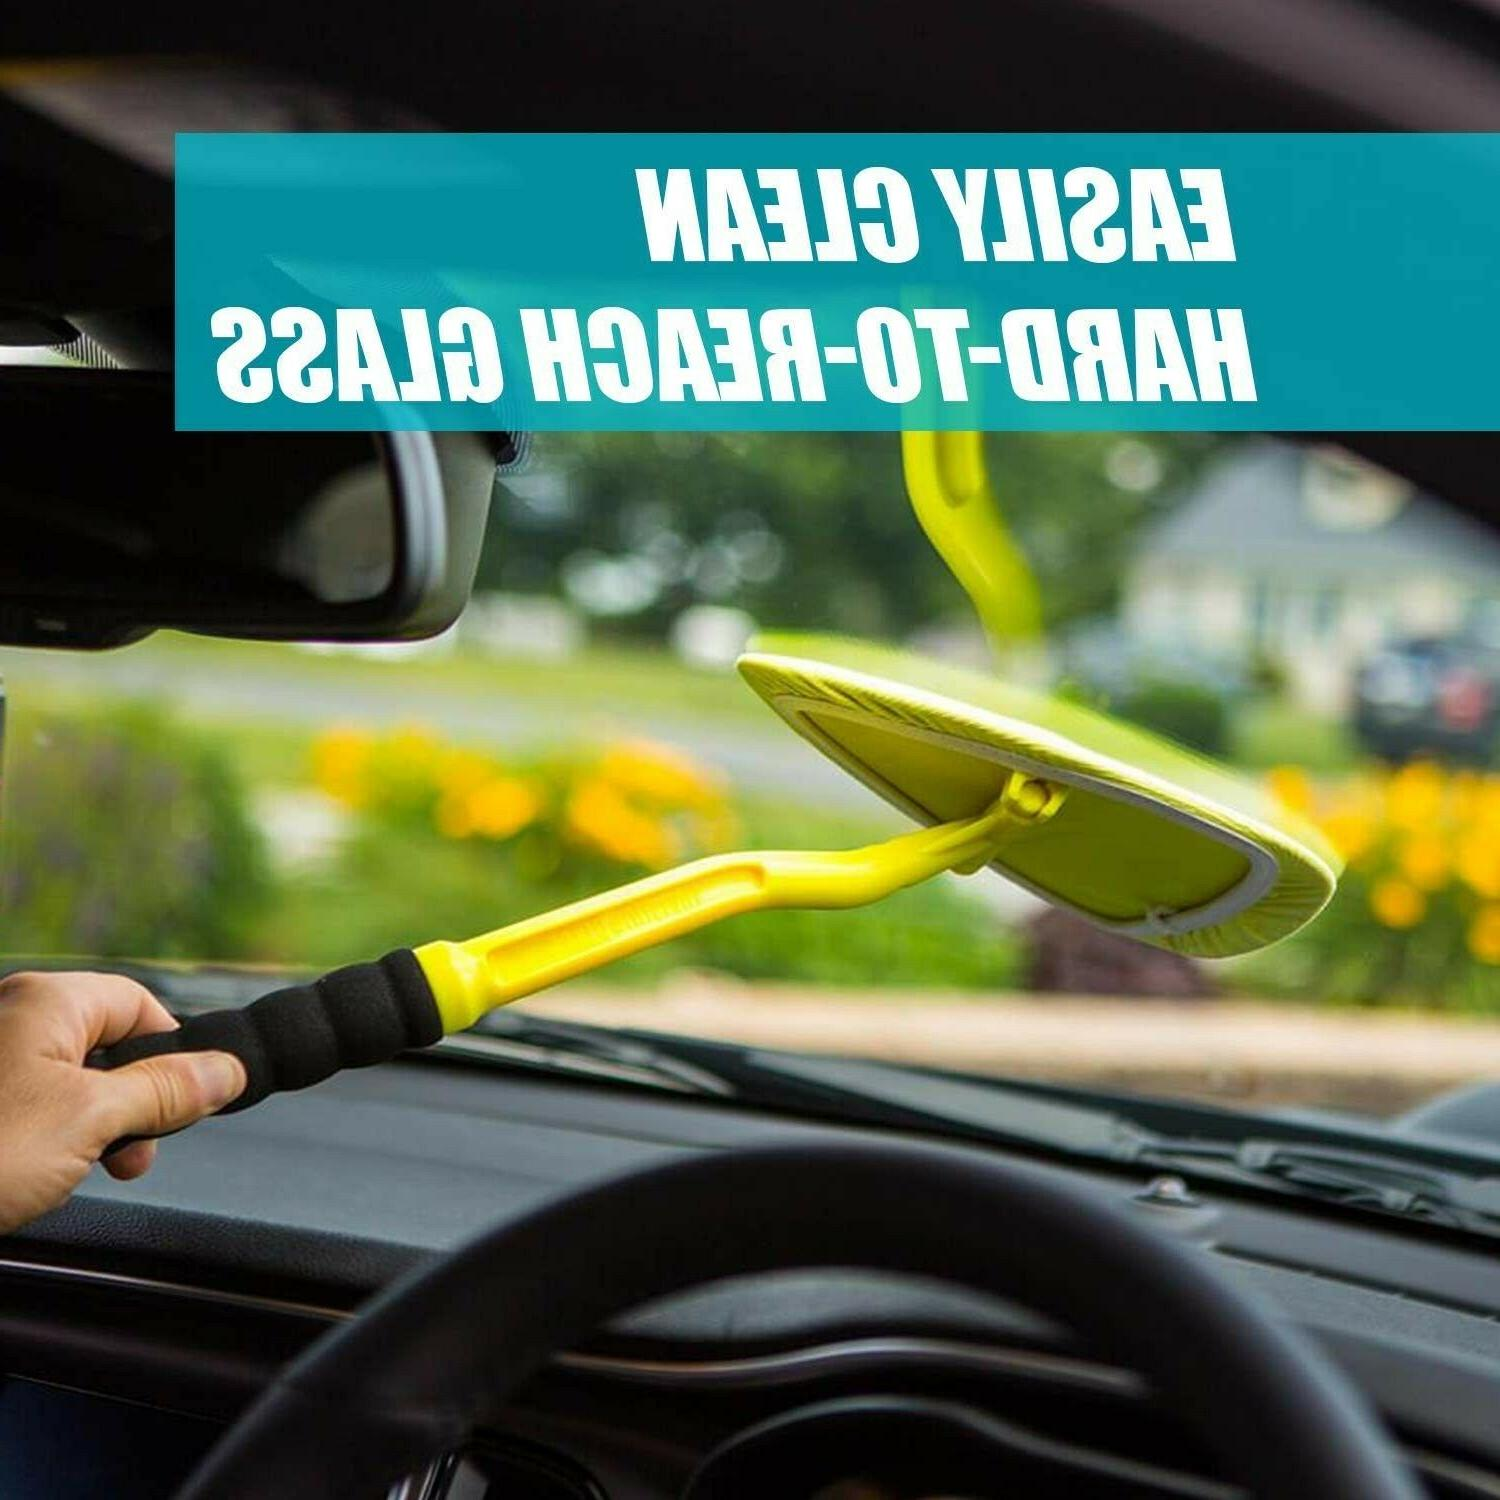 Tool Windshields, Glass Cleaner